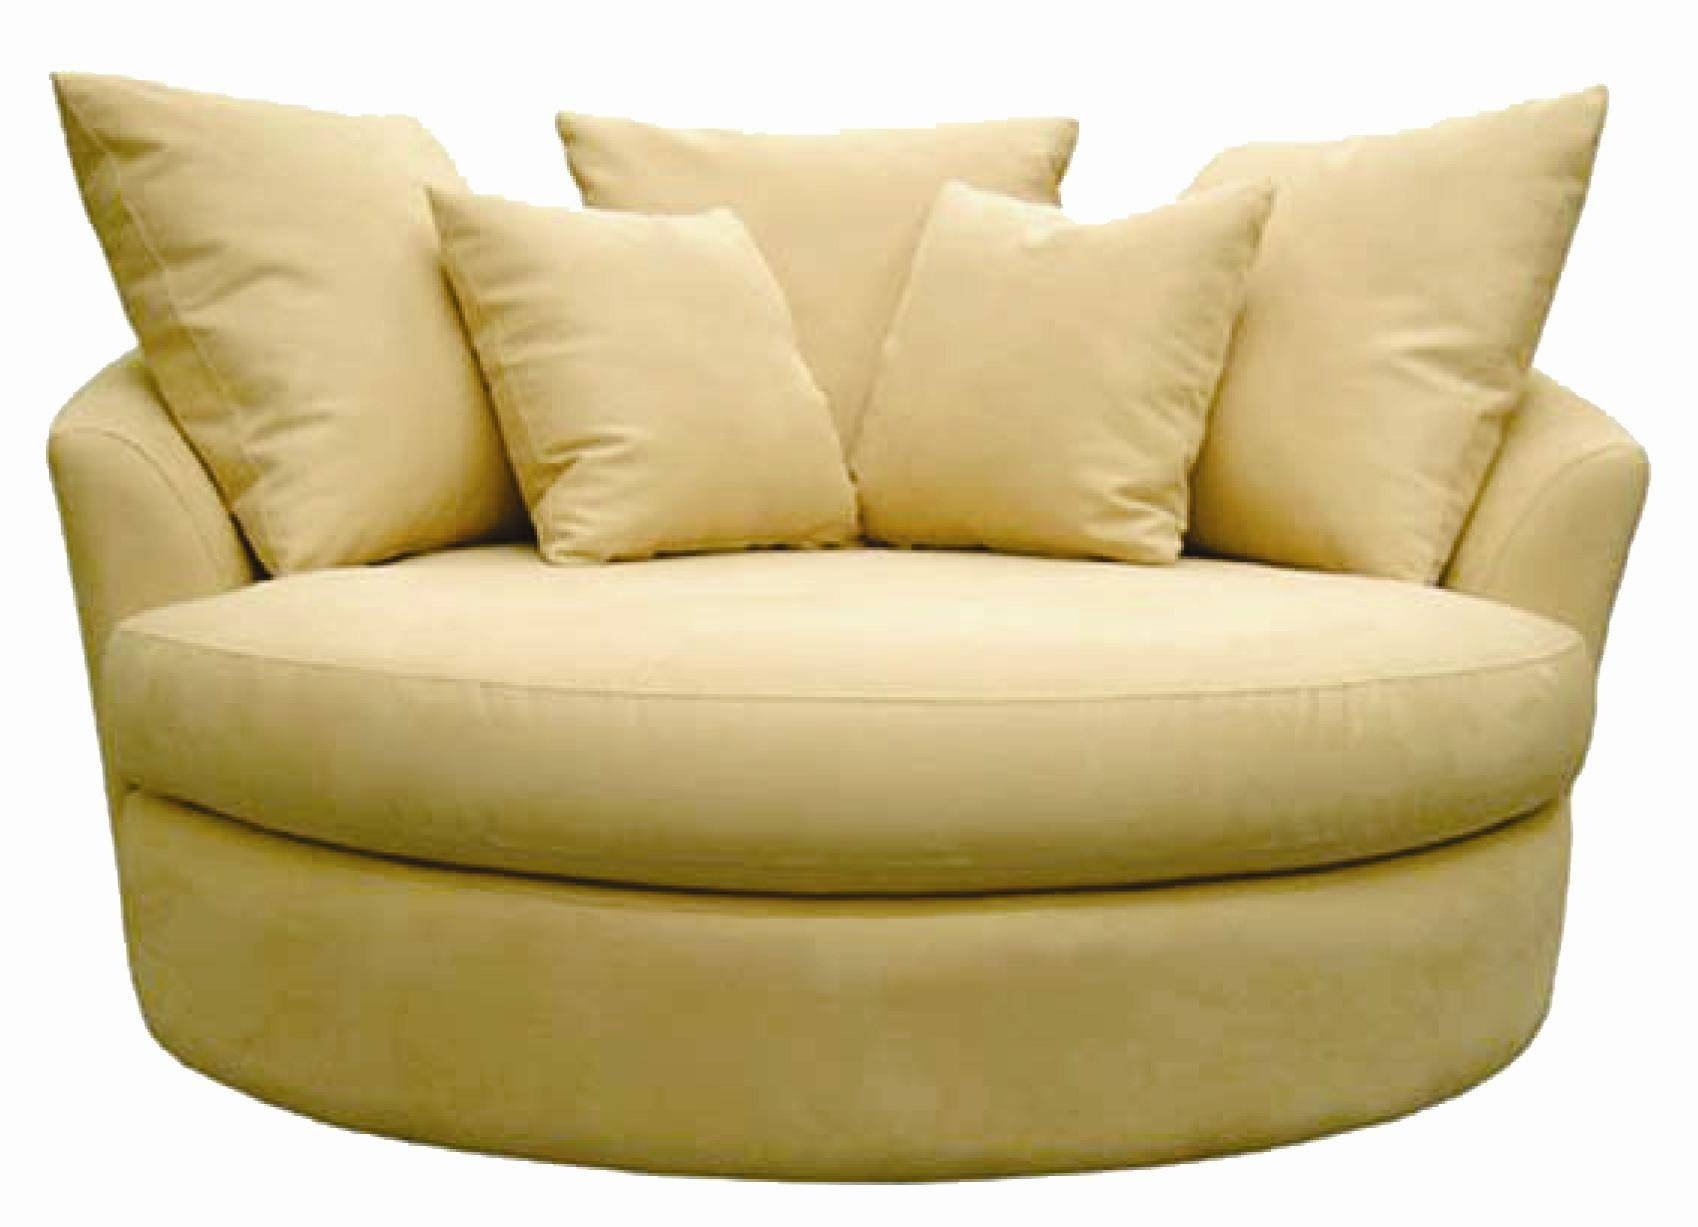 Furniture: Couch Covers At Walmart To Make Your Furniture Stylish with Big Round Sofa Chairs (Image 9 of 30)